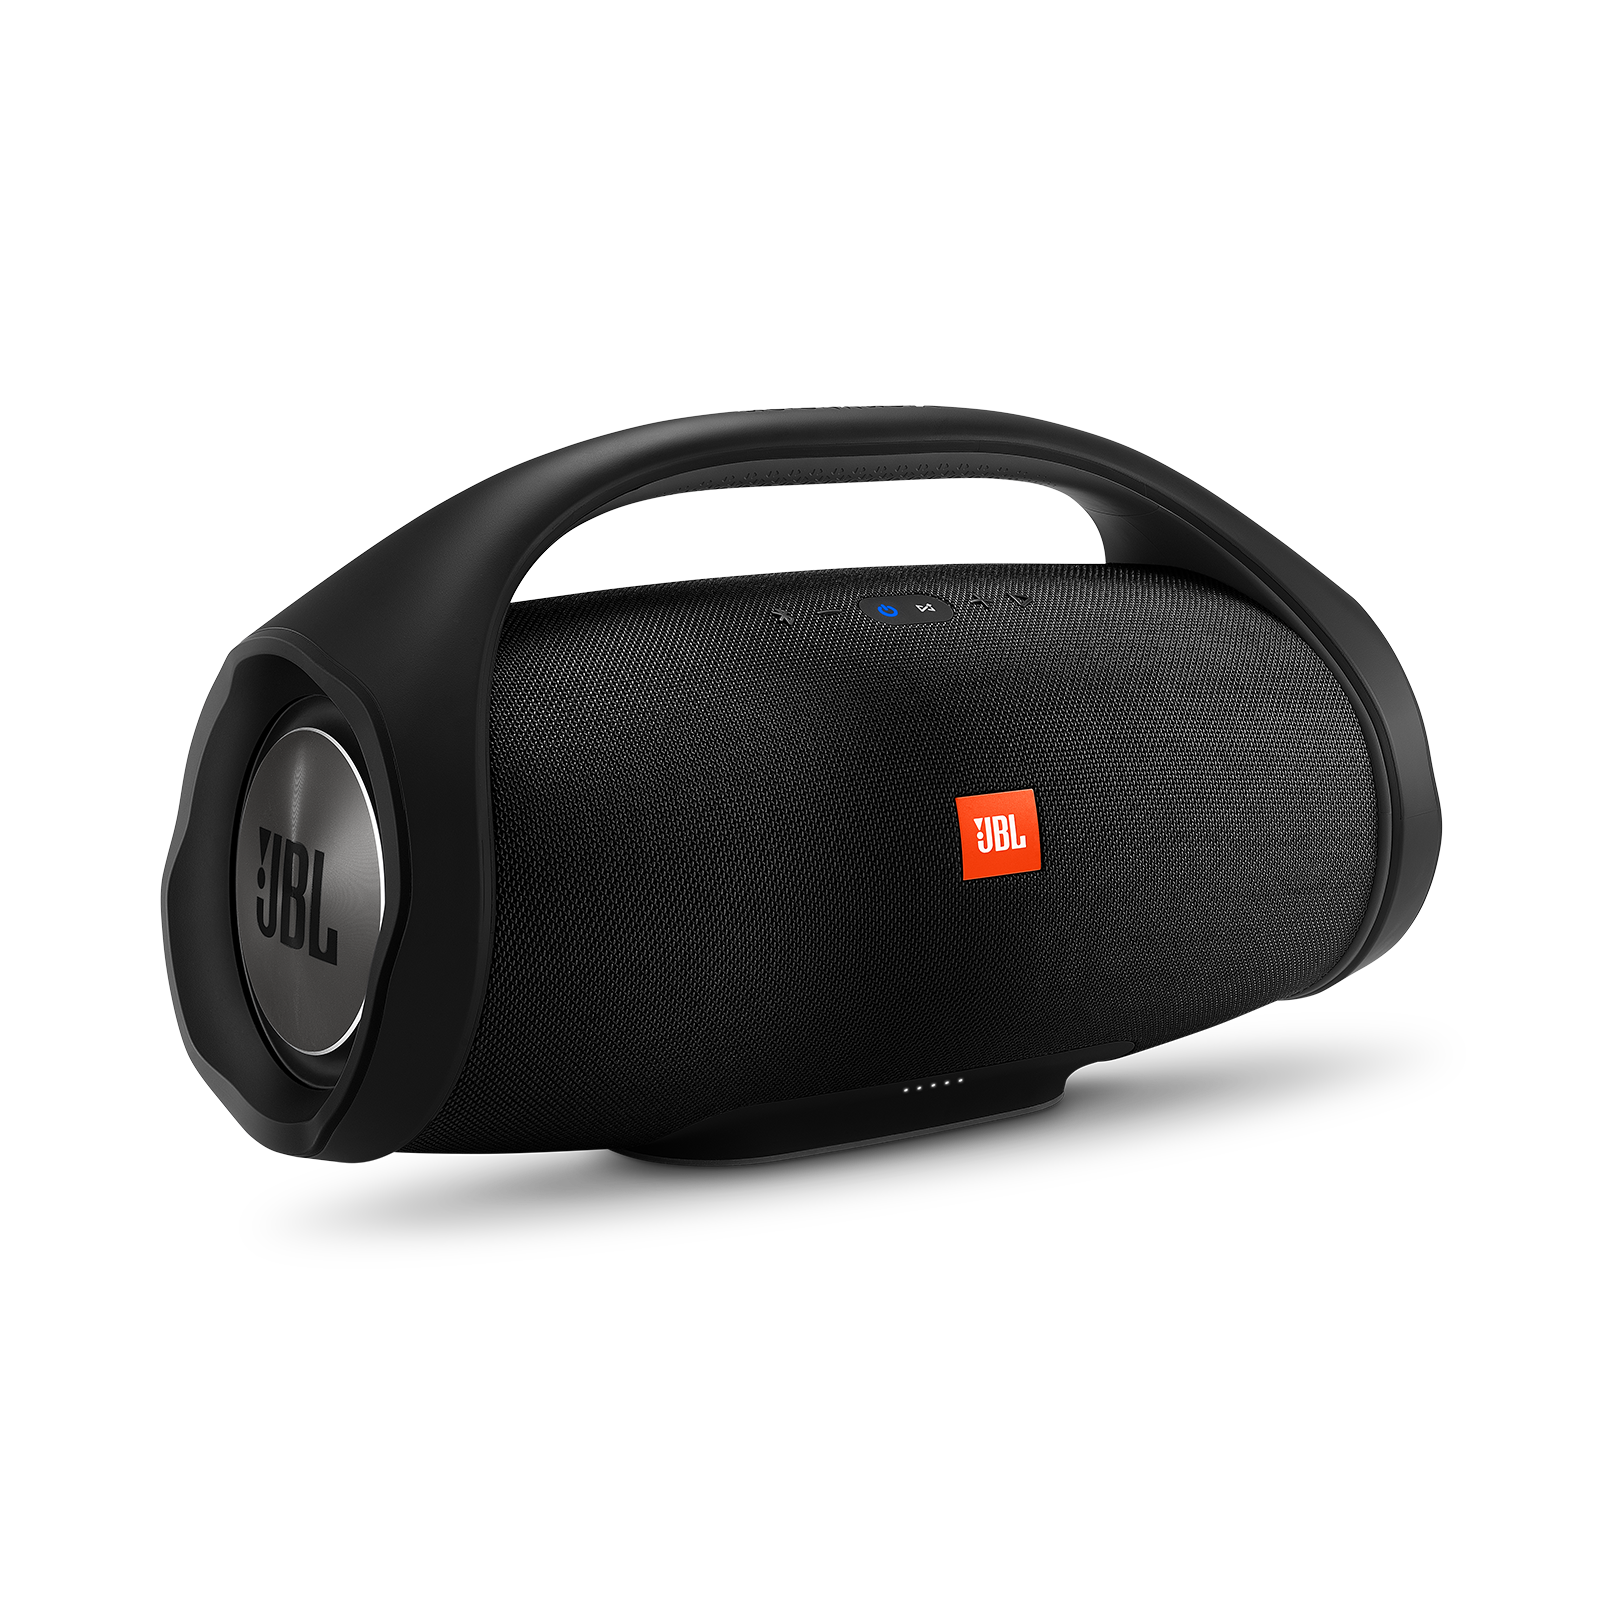 JBL Boombox refurbished Black